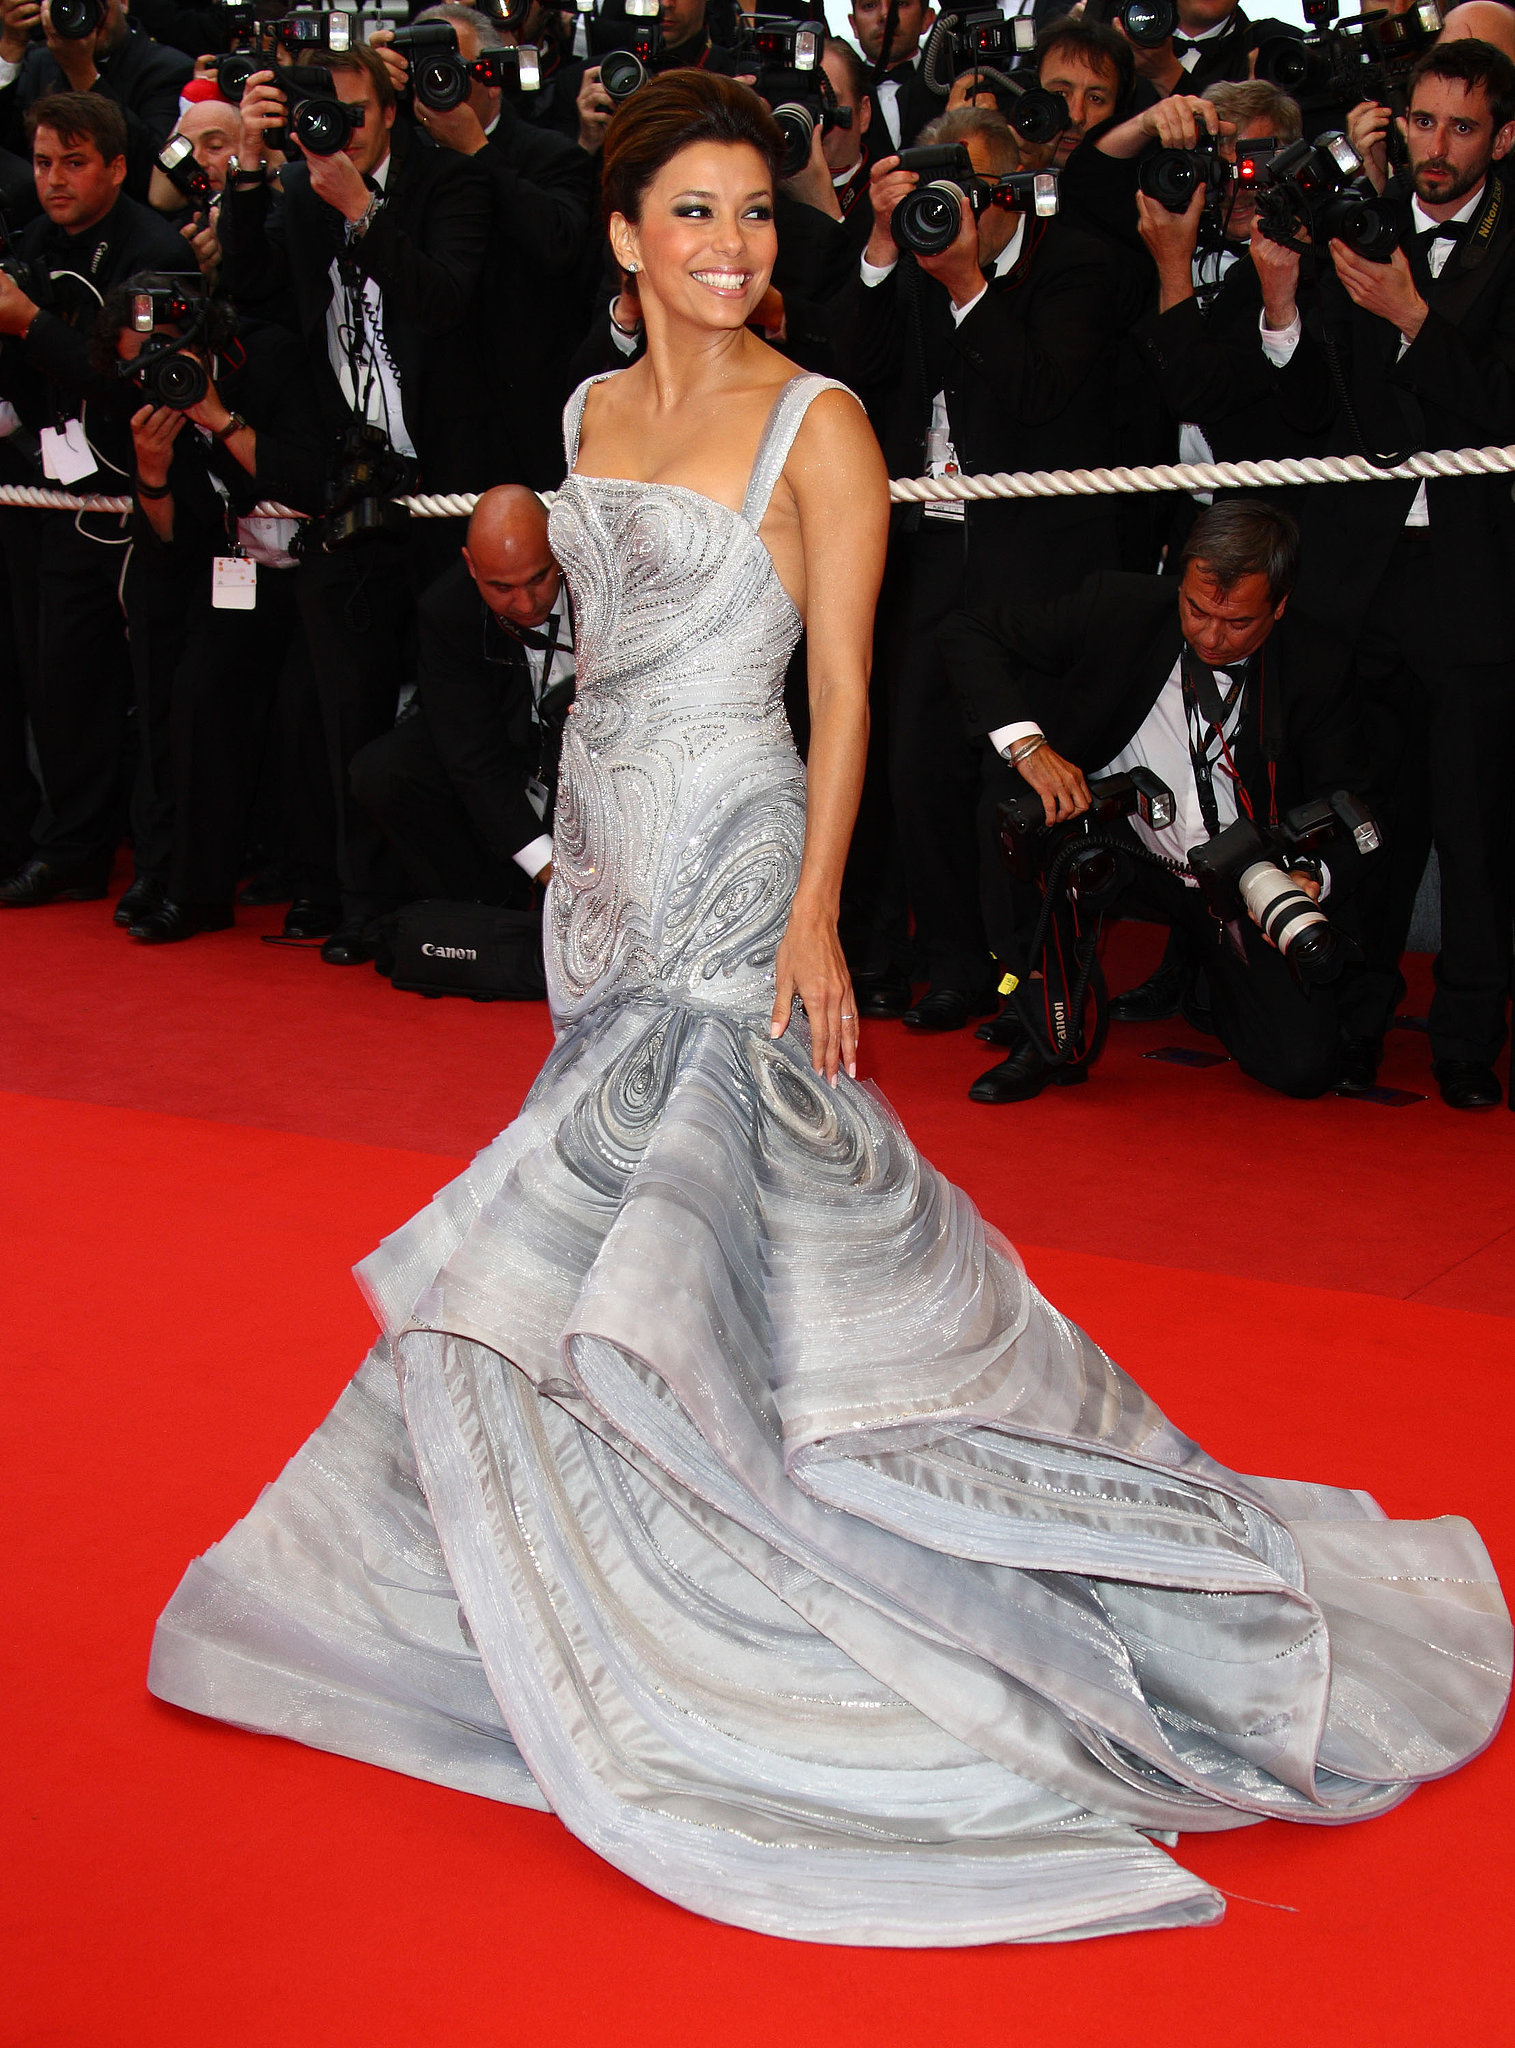 Eva Longoria in Versace at the Cannes International Film Festival